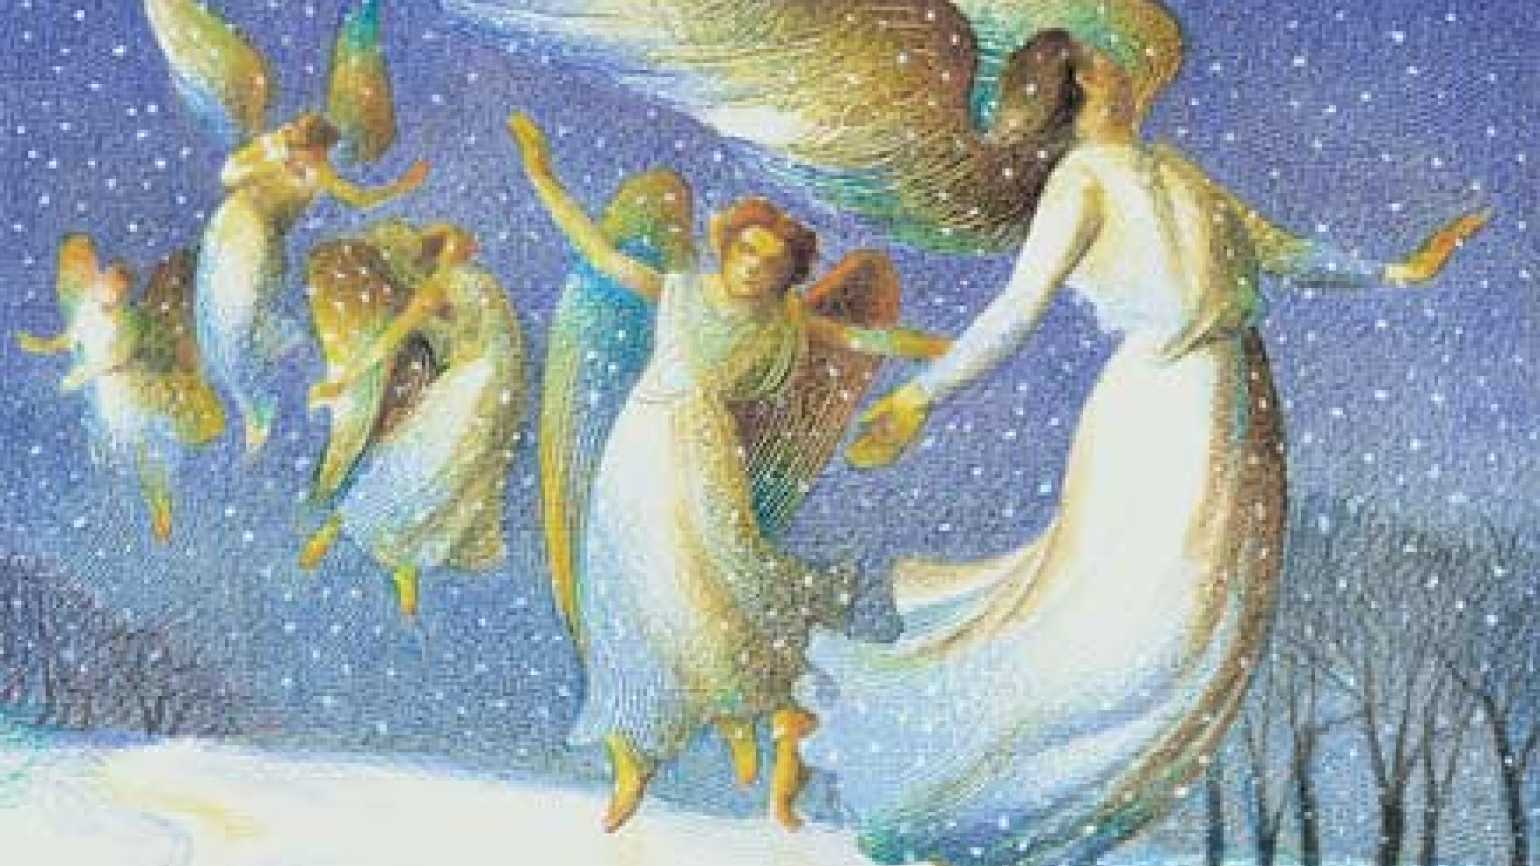 An artist's rendering of Milton's swirls of snow that looked like angels